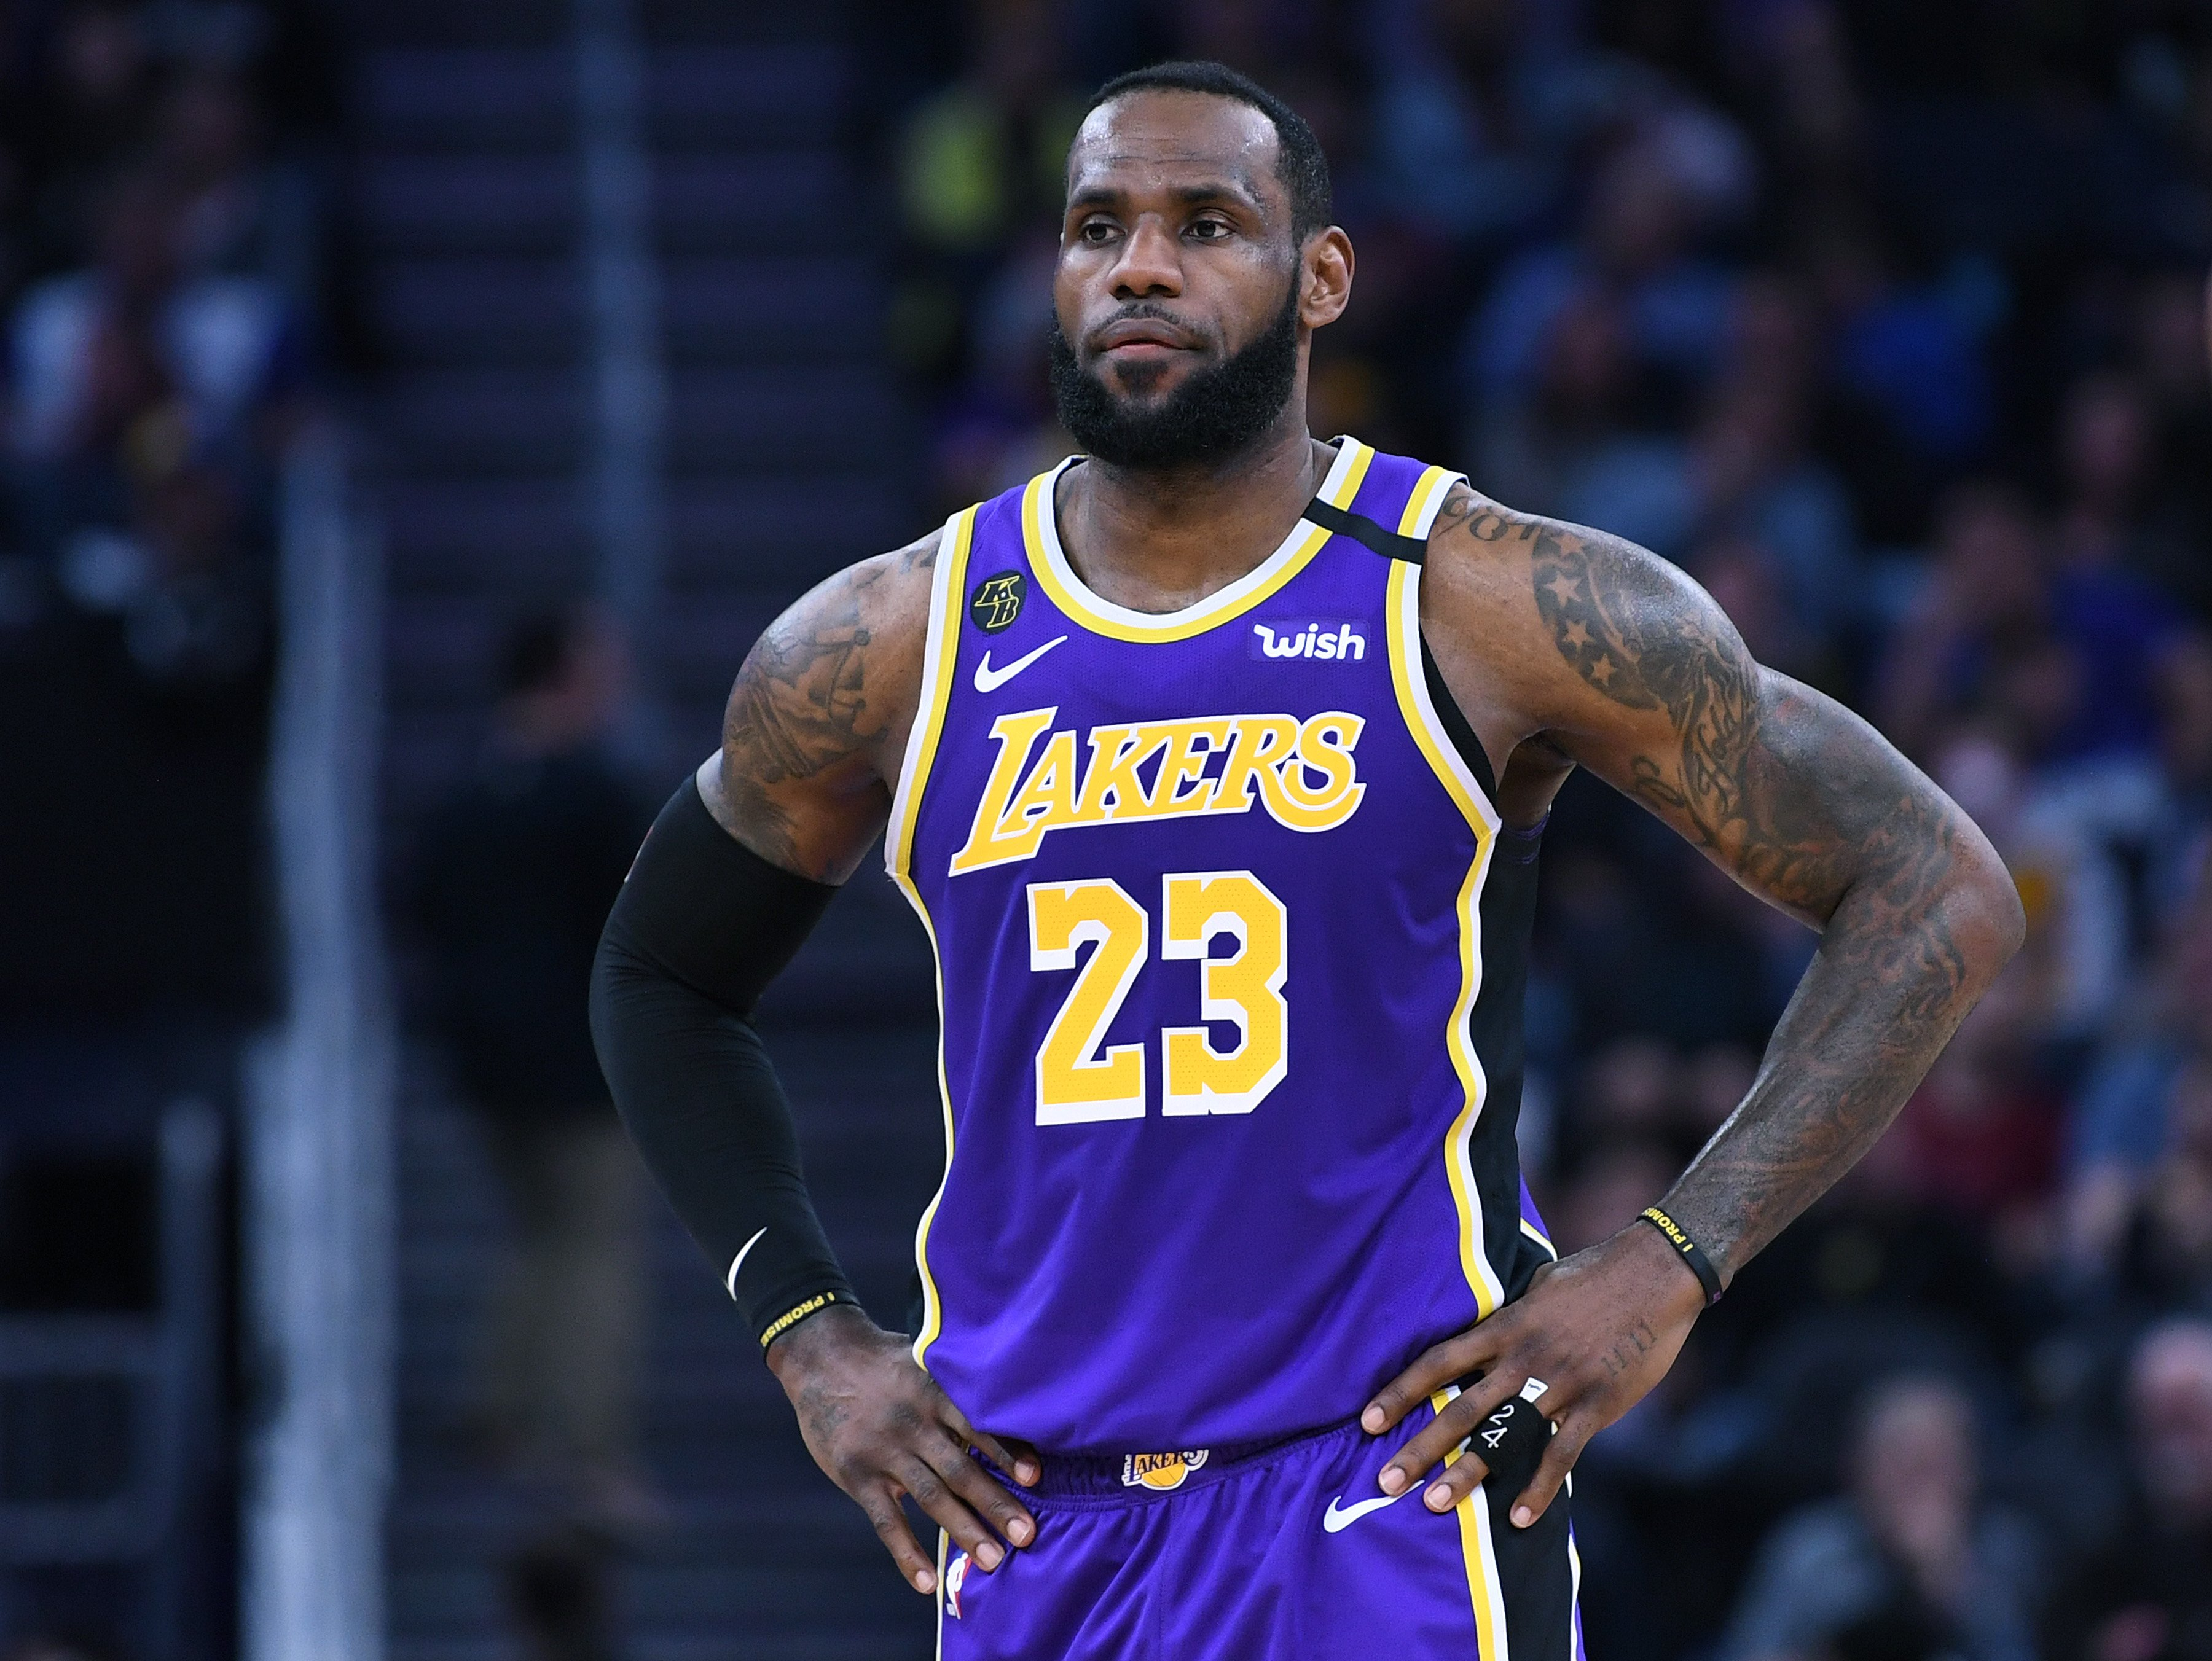 LeBron James #23 of the Los Angeles Lakers during an NBA basketball game at Chase Center on February 08, 2020, in San Francisco, California. | Source: Getty Images.